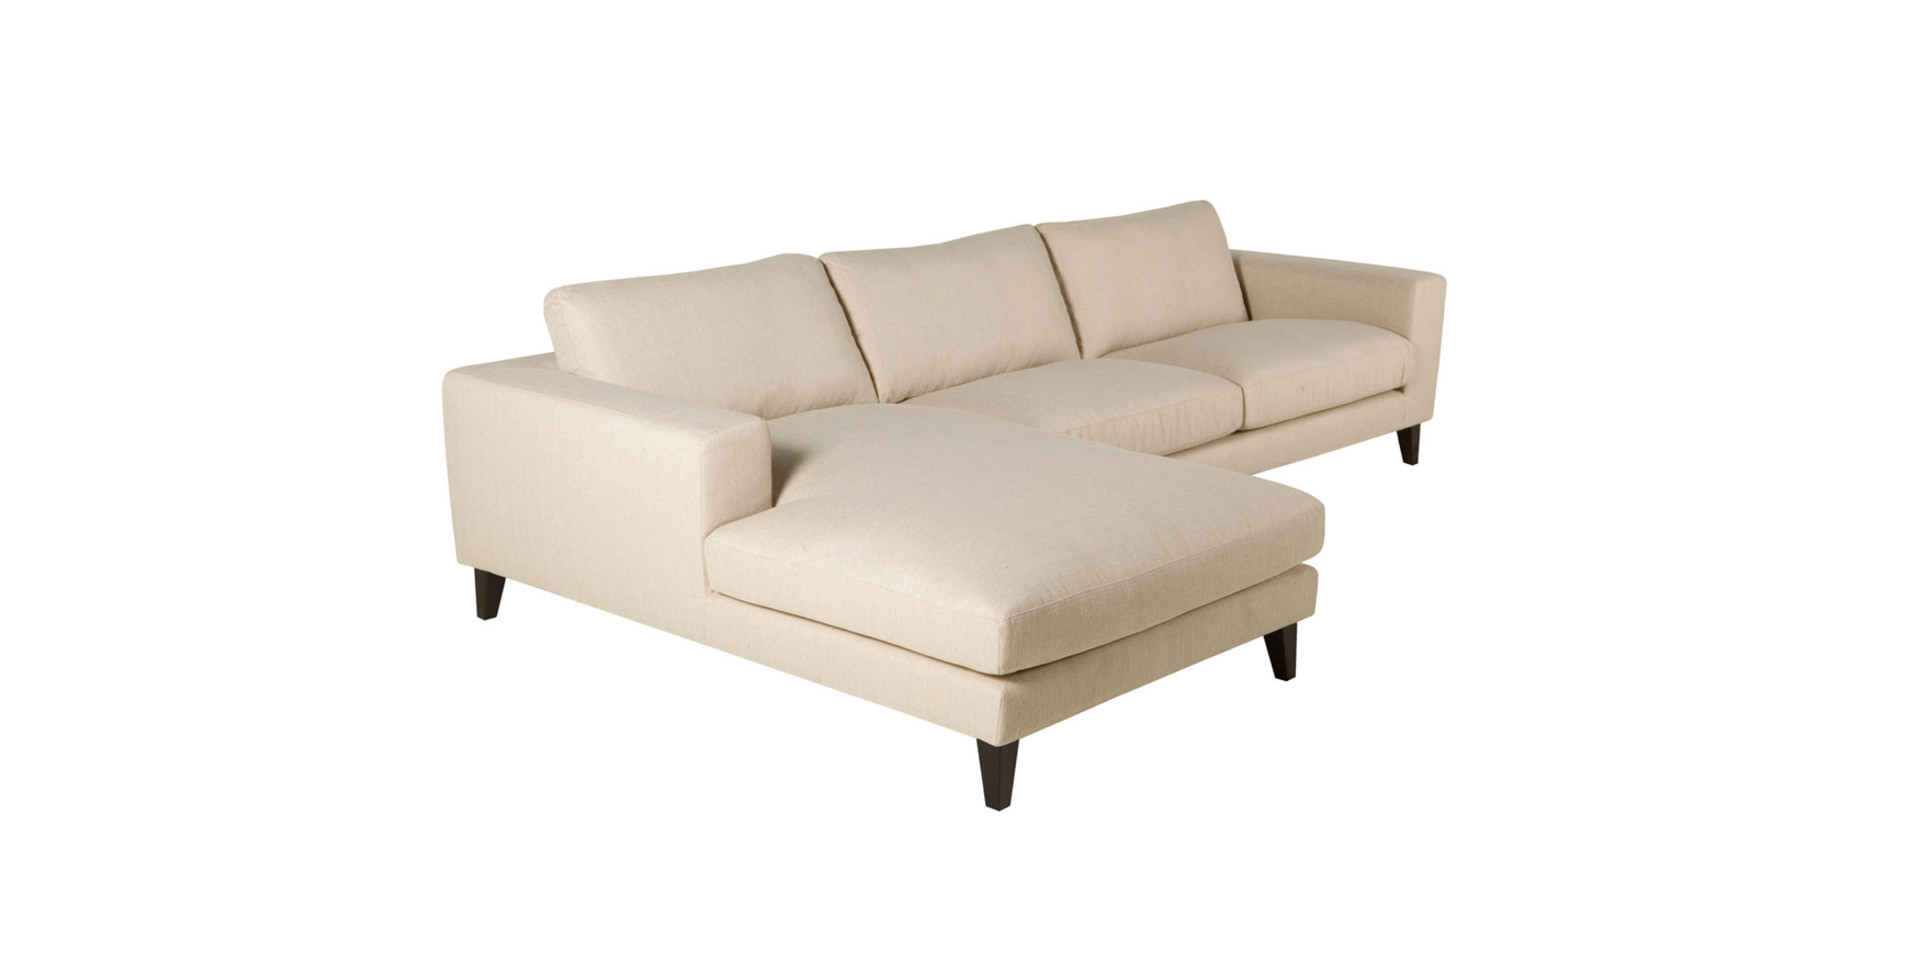 sits-passion-angle-set2_cedros2_beige_6